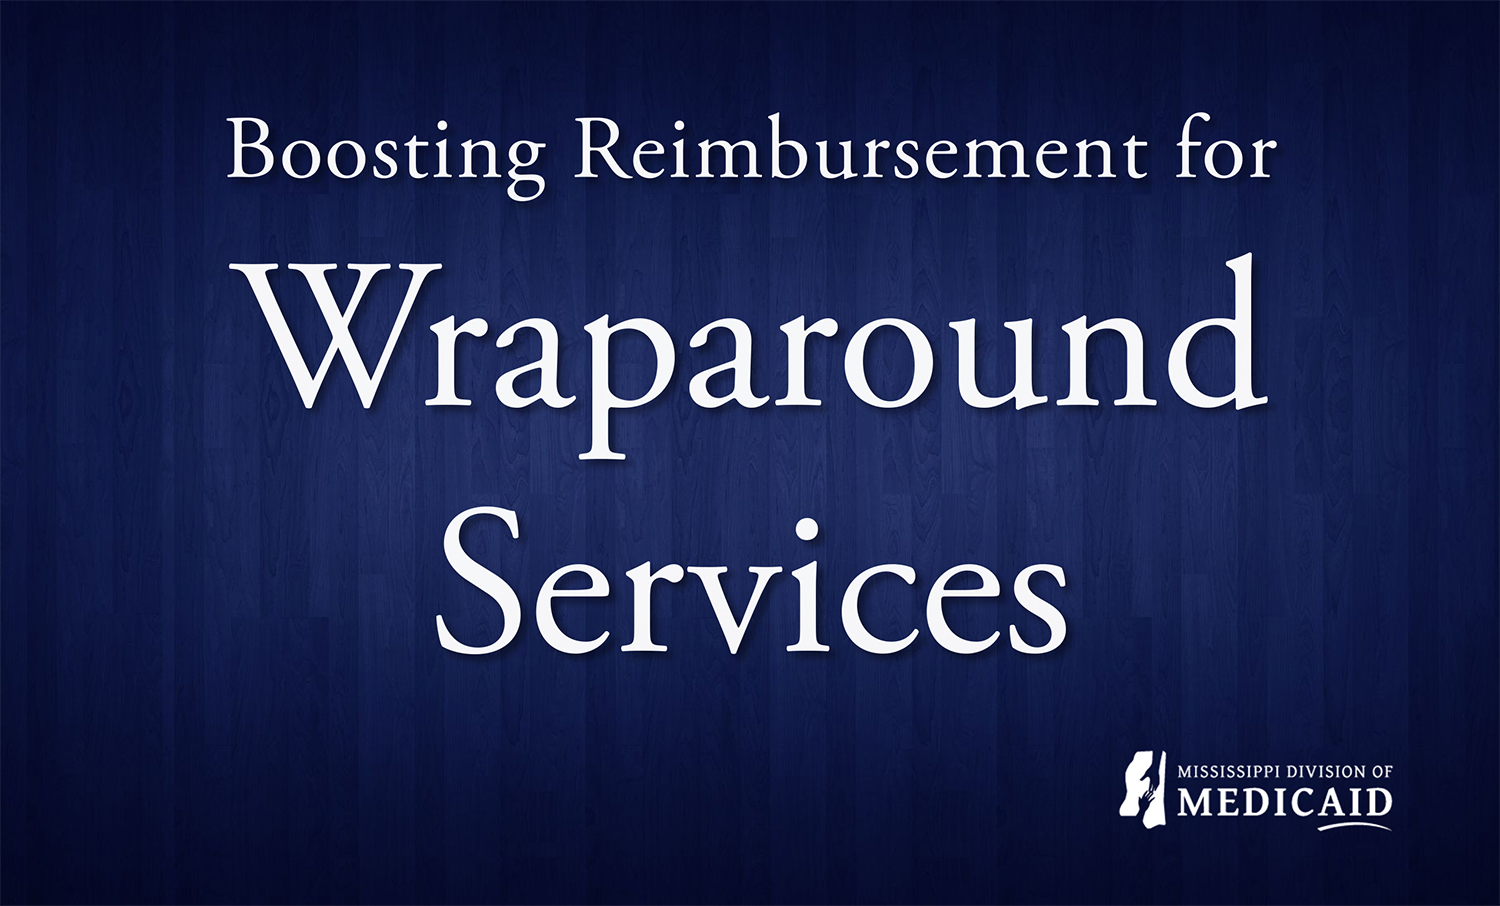 You are currently viewing Mississippi Department of Medicaid Announces Reimbursement Changes for Wraparound Services